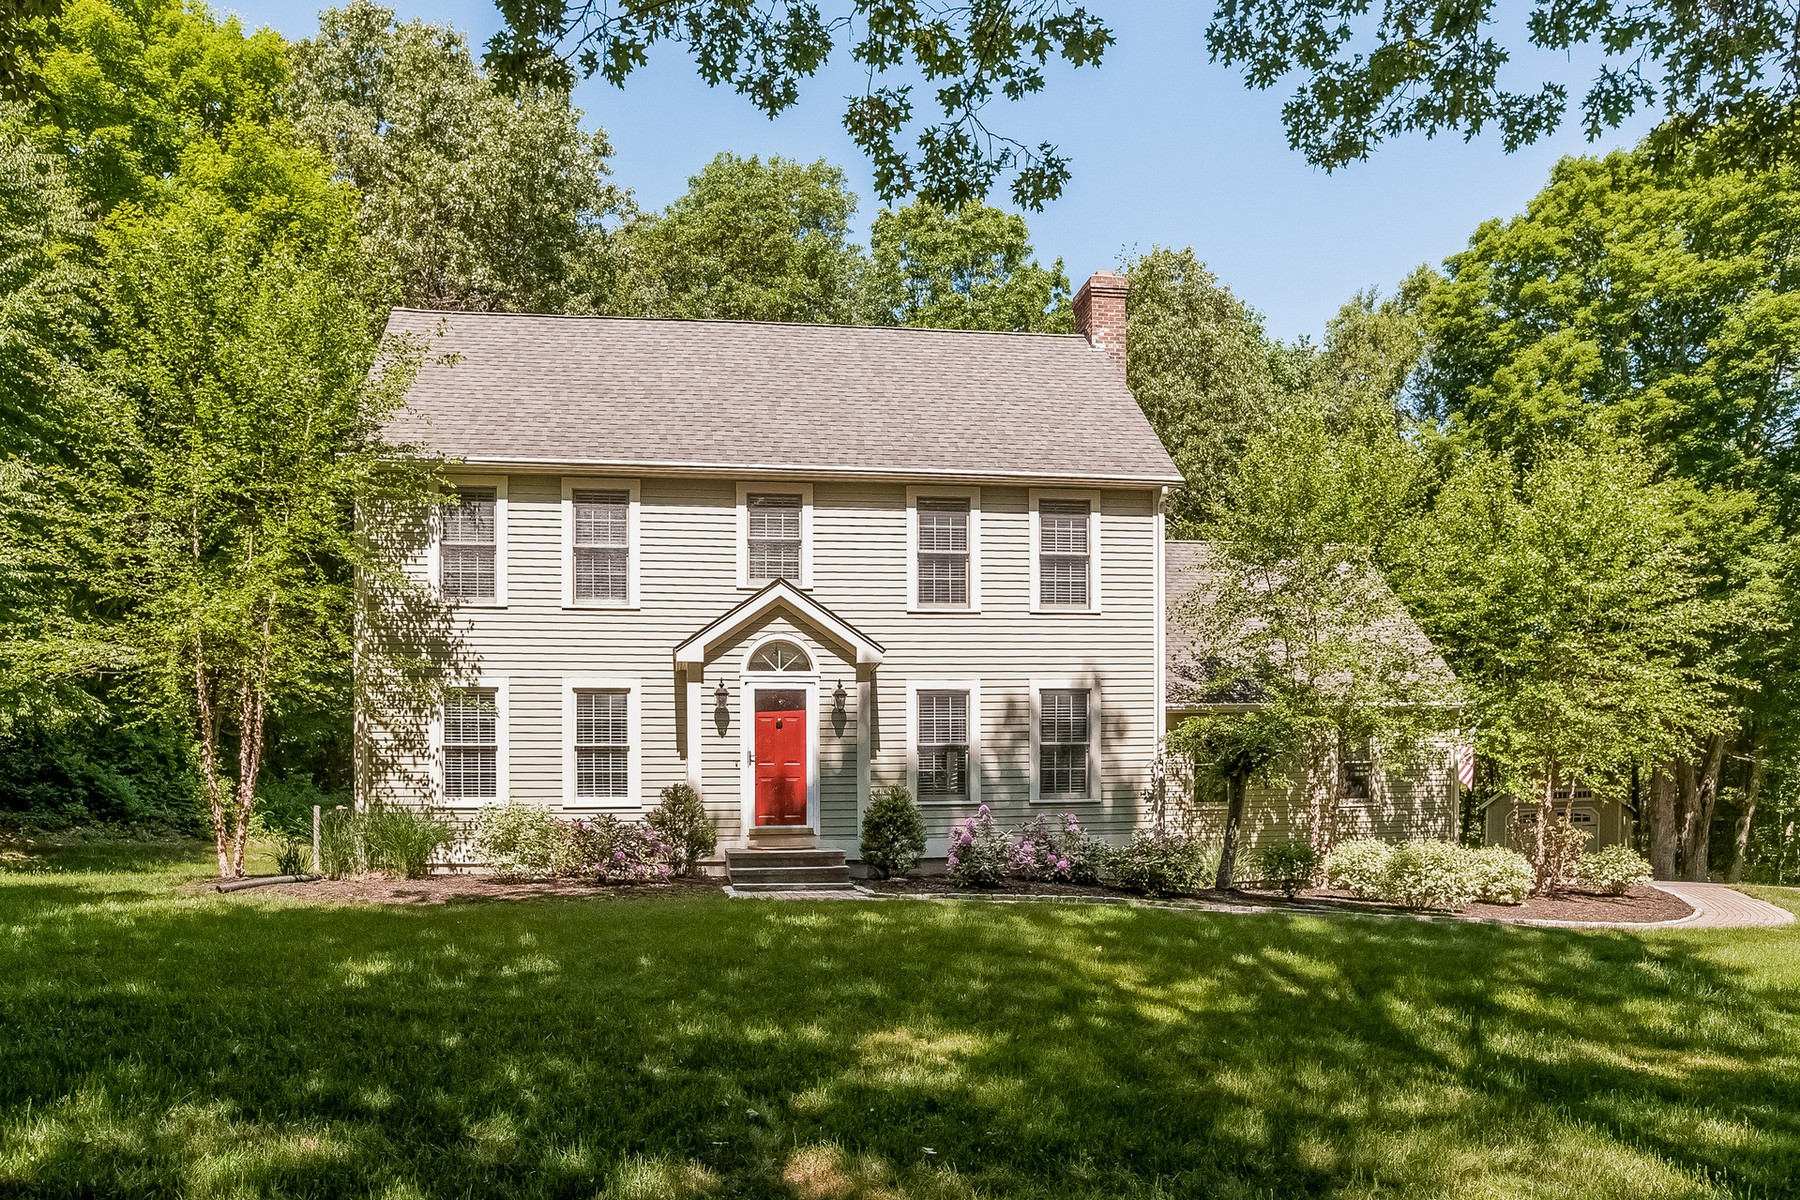 Single Family Home for Sale at Beautifully Sited on Cul-De-Sac 7 Lords Meadow Ln Old Lyme, Connecticut 06371 United States